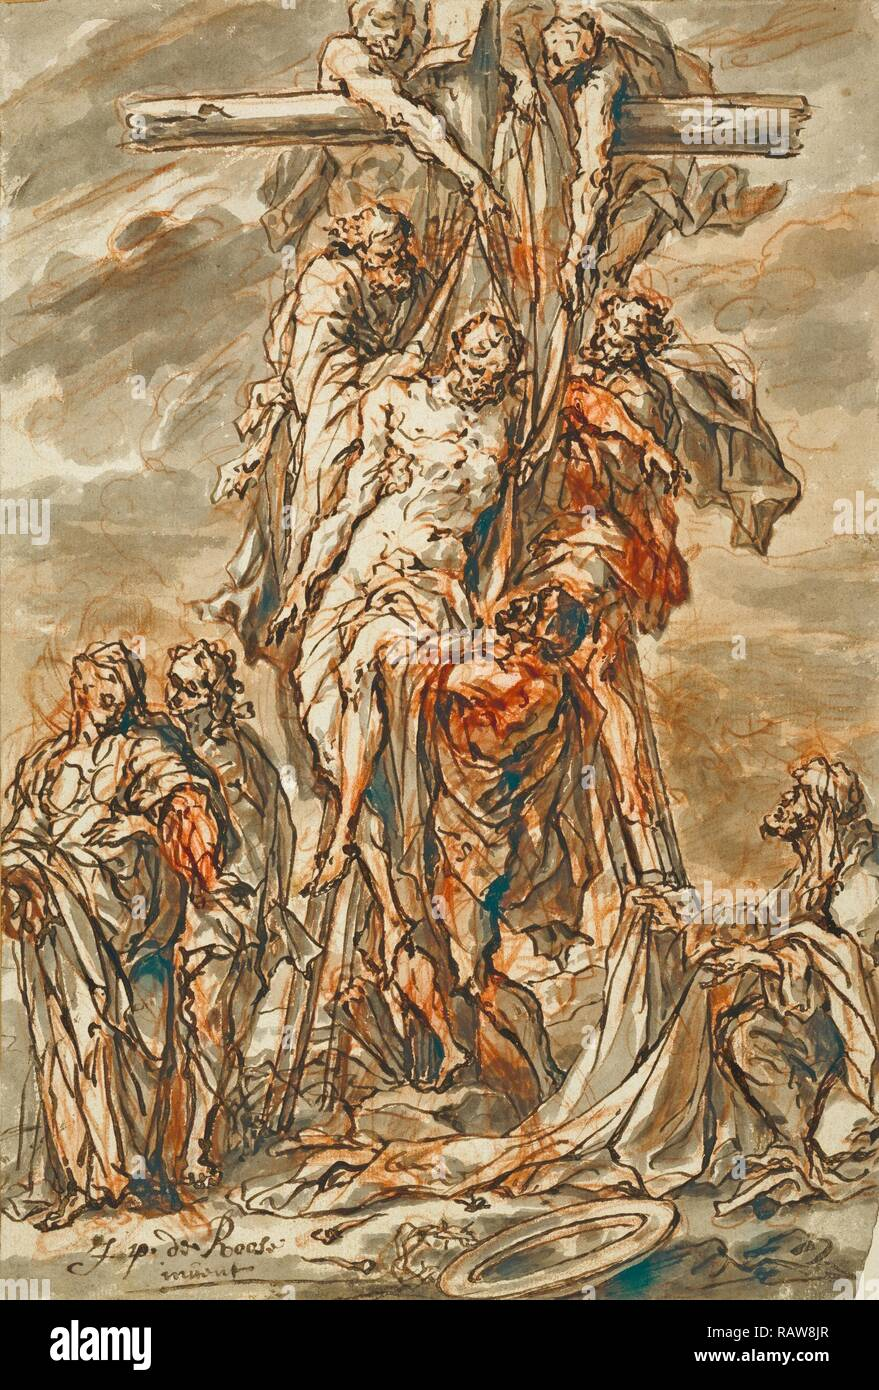 Descent from the Cross, Phillip Roos, German, 1655/1657 - 1706, about 1696, Pen and brown ink with gray wash over red reimagined Stock Photo